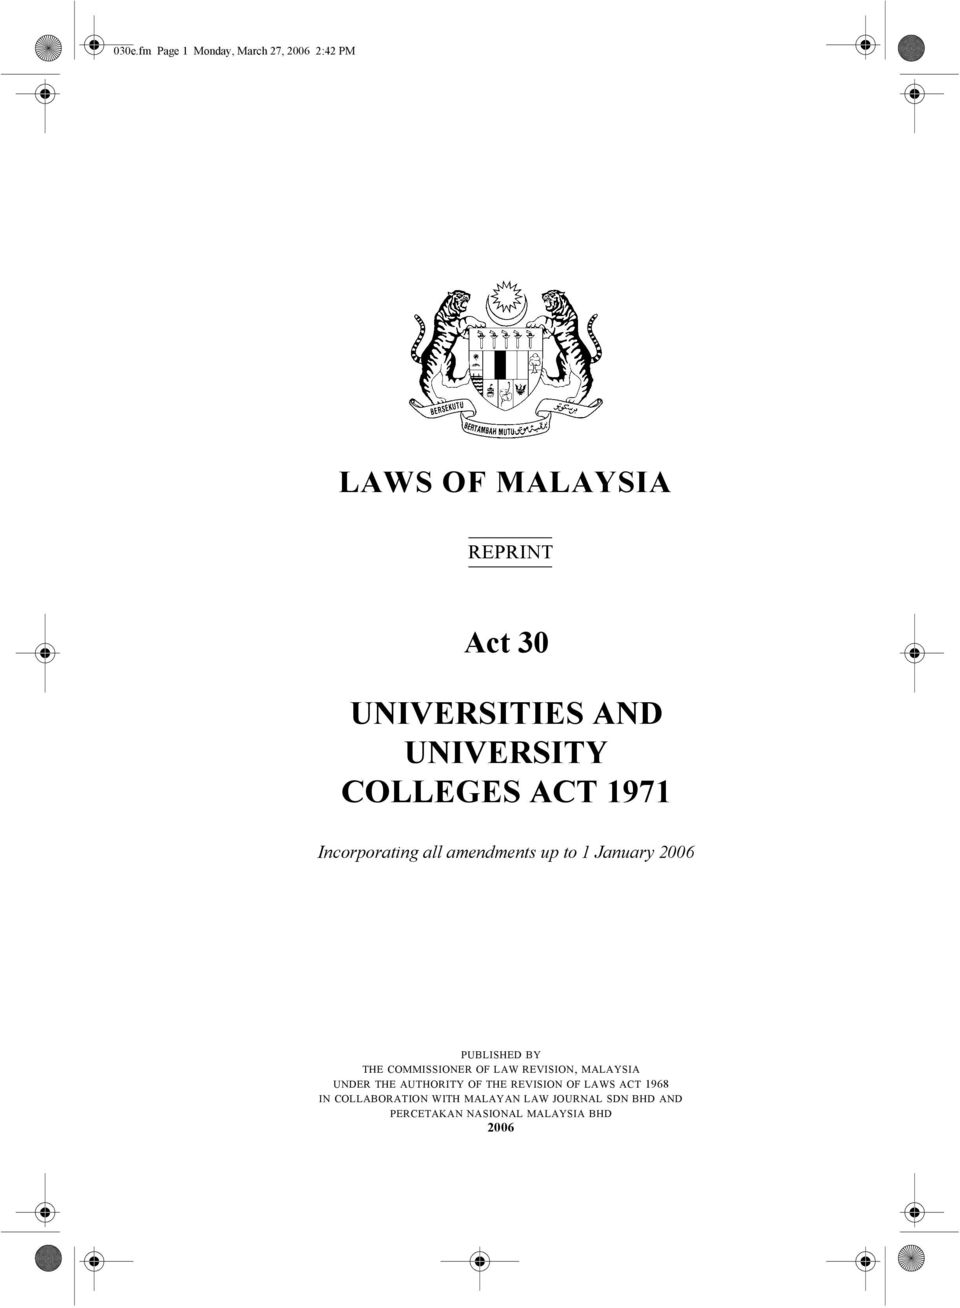 BY THE COMMISSIONER OF LAW REVISION, MALAYSIA UNDER THE AUTHORITY OF THE REVISION OF LAWS ACT